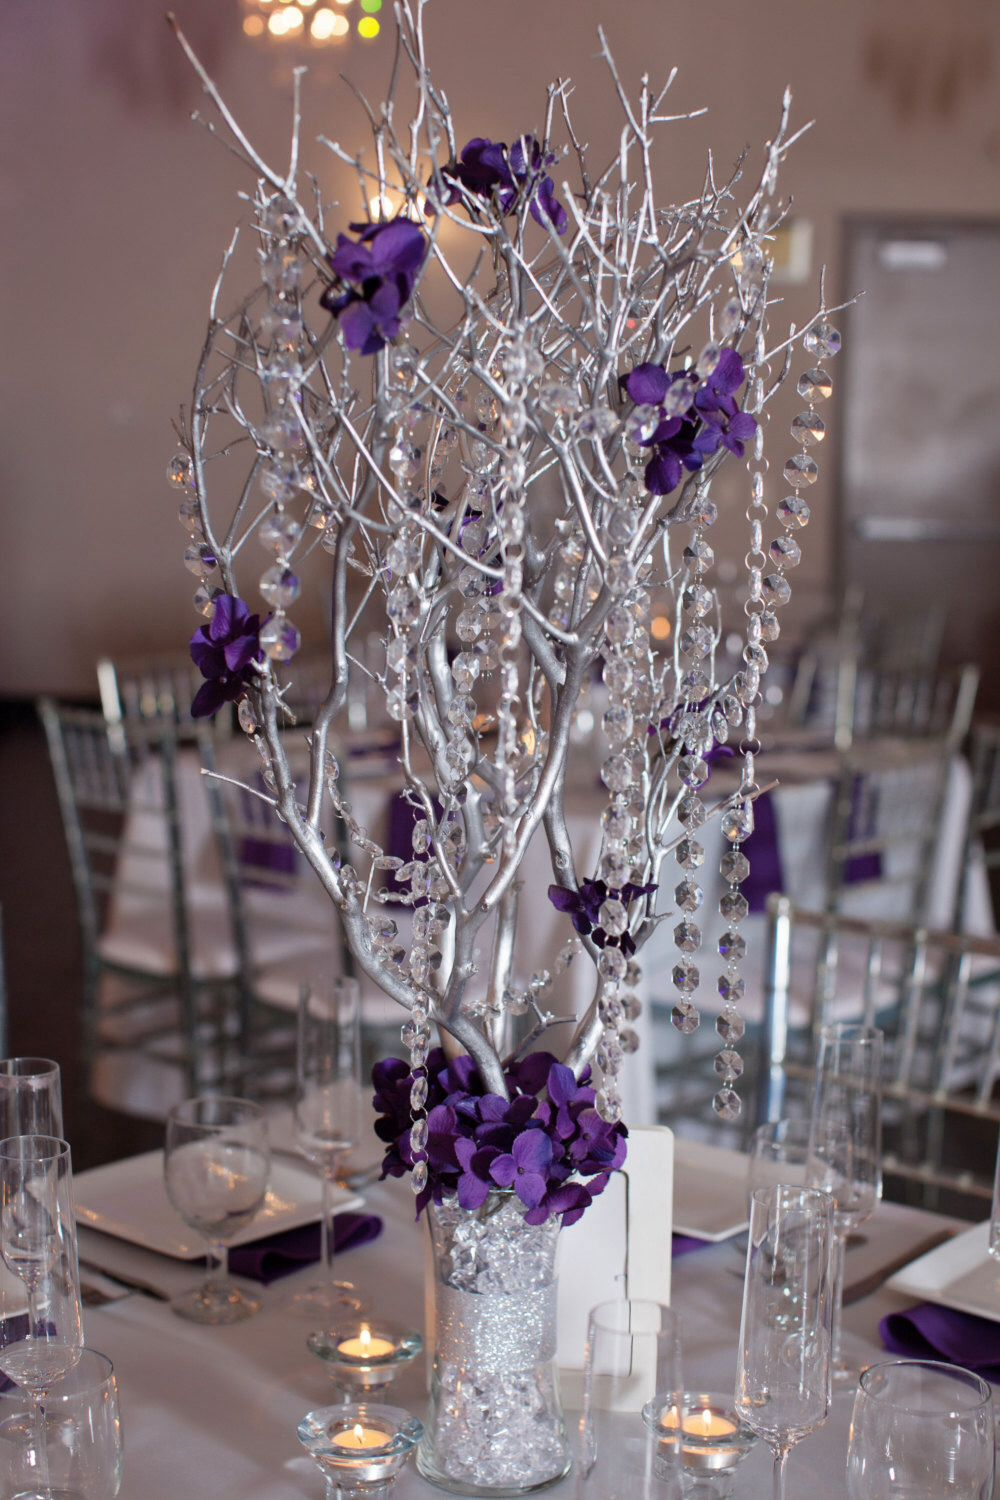 Spray painted branches, dangling crystals with a touch of purple flowers |  Wedding centerpieces diy, Barn wedding decorations, Silver wedding  decorations